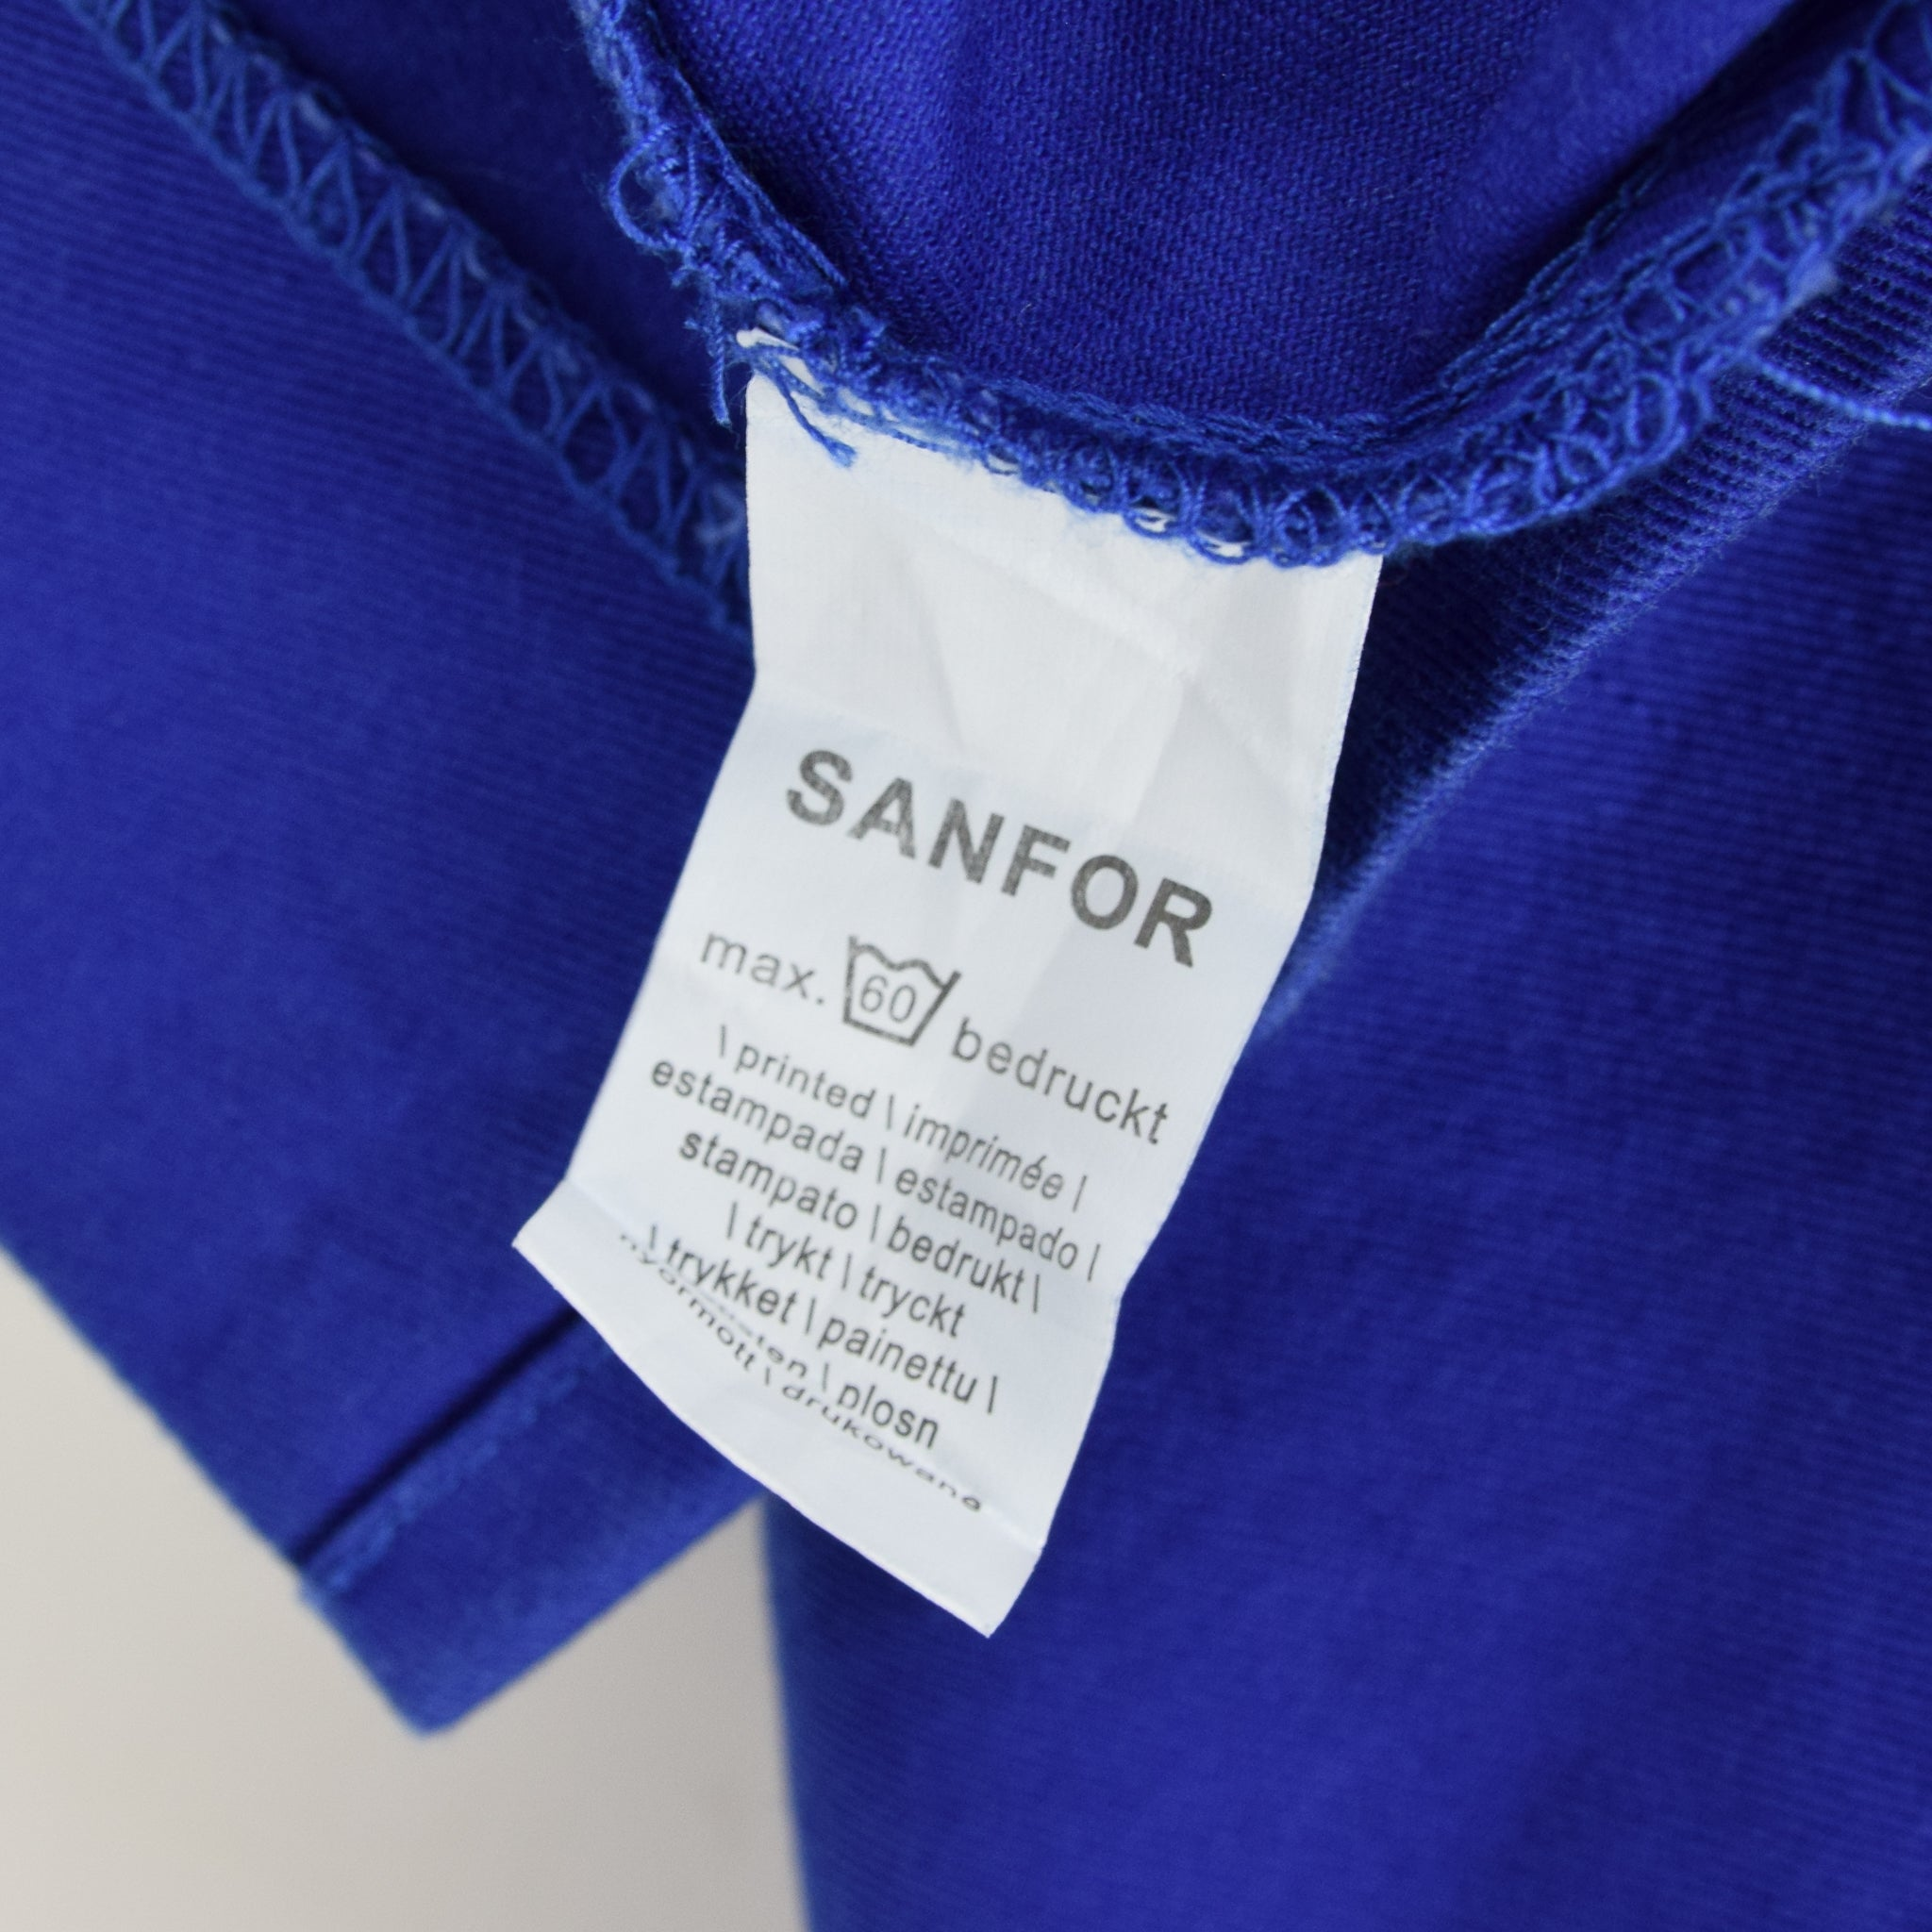 Vintage Bright Blue French Style Worker Sanforized Chore Shirt Jacket M / L label